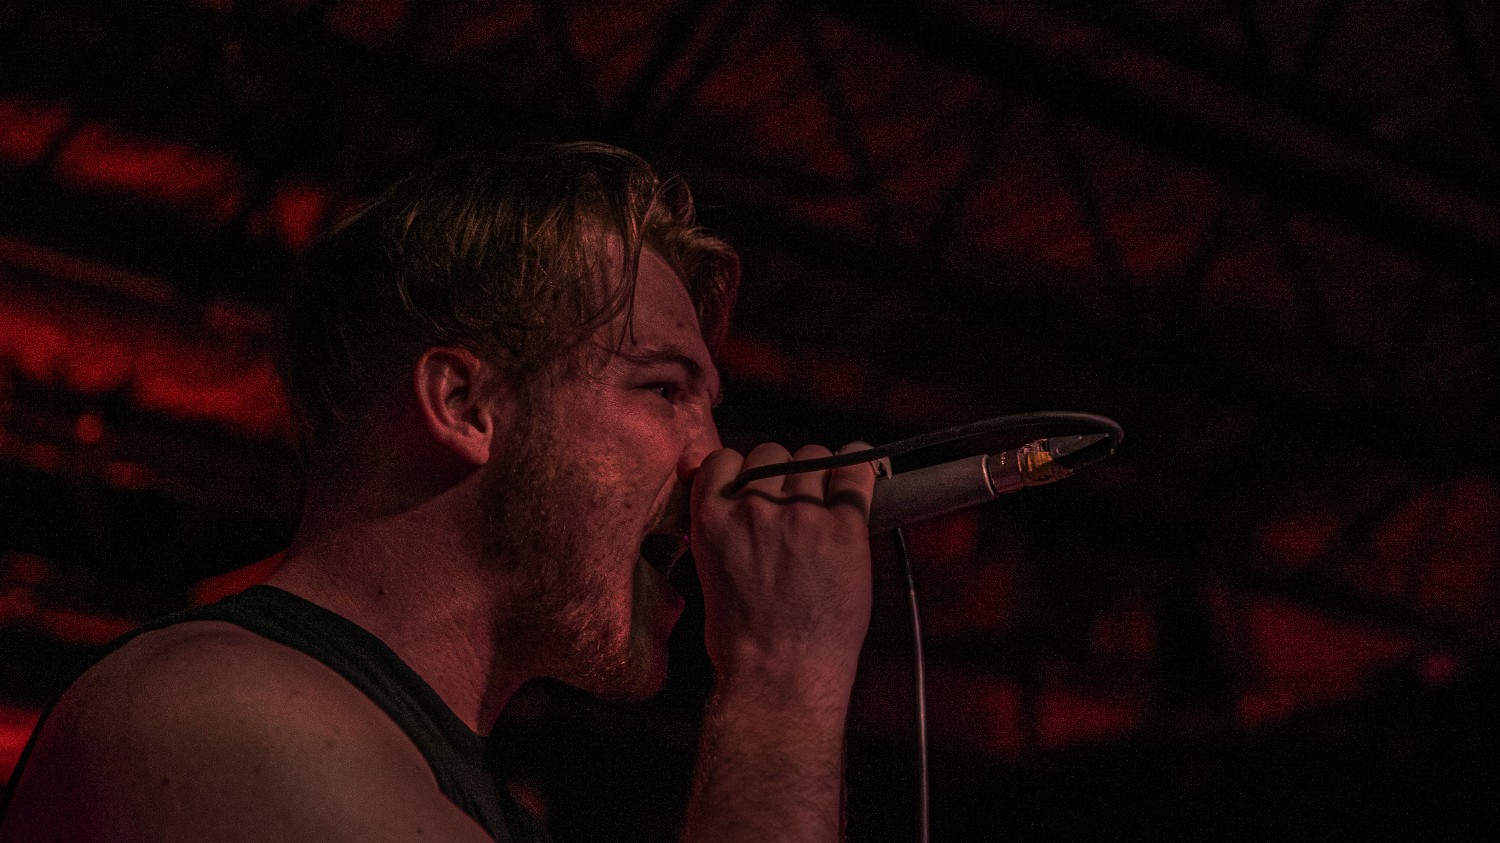 University of Iowa student Joe Gephart performs at Gabe's in downtown Iowa City on Aug. 17. Gephart is a part of the local metal band NonGrata.